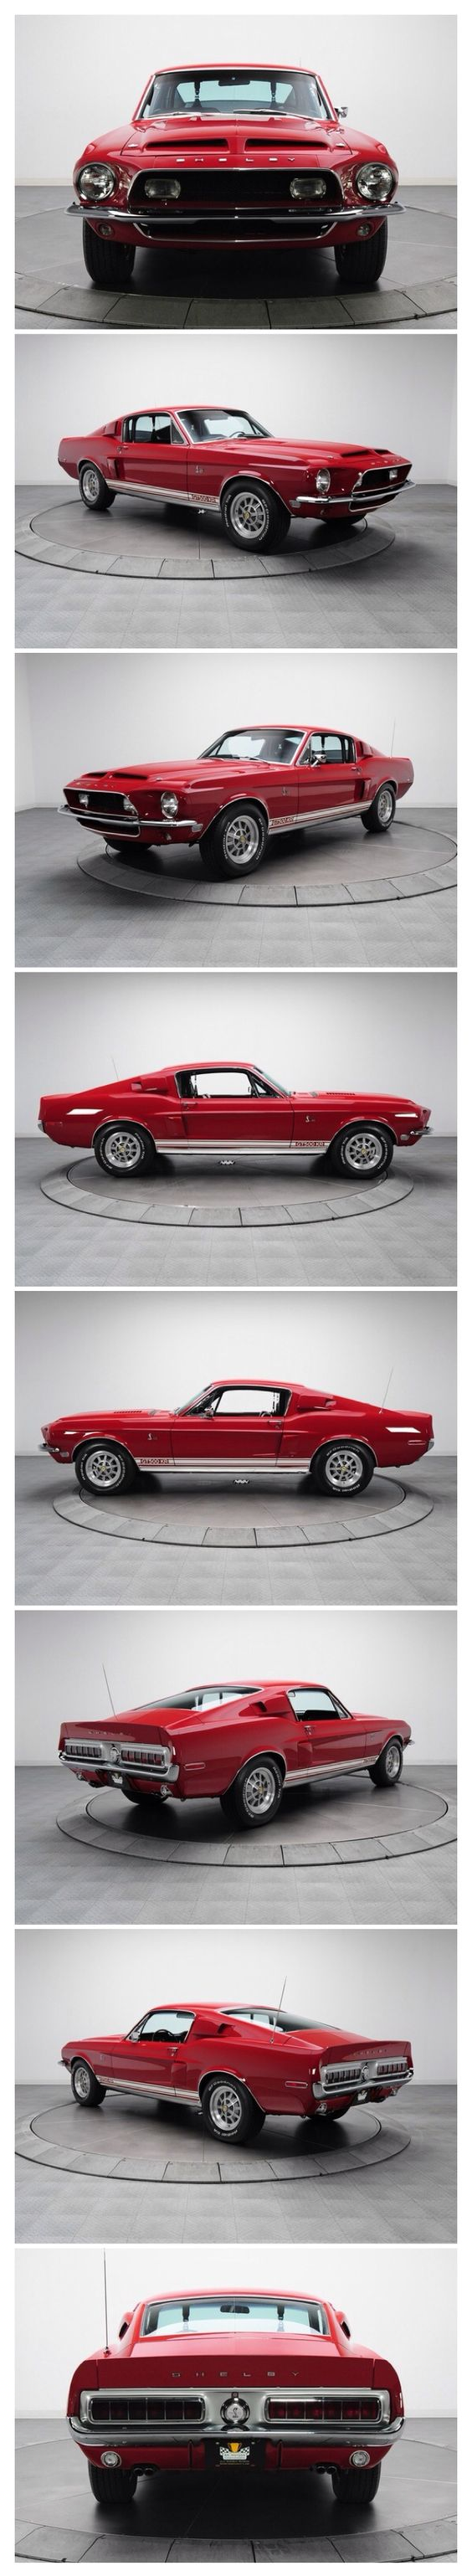 The 25 best 1968 mustang ideas on pinterest 68 ford mustang 1967 mustang and ford mustang 1968